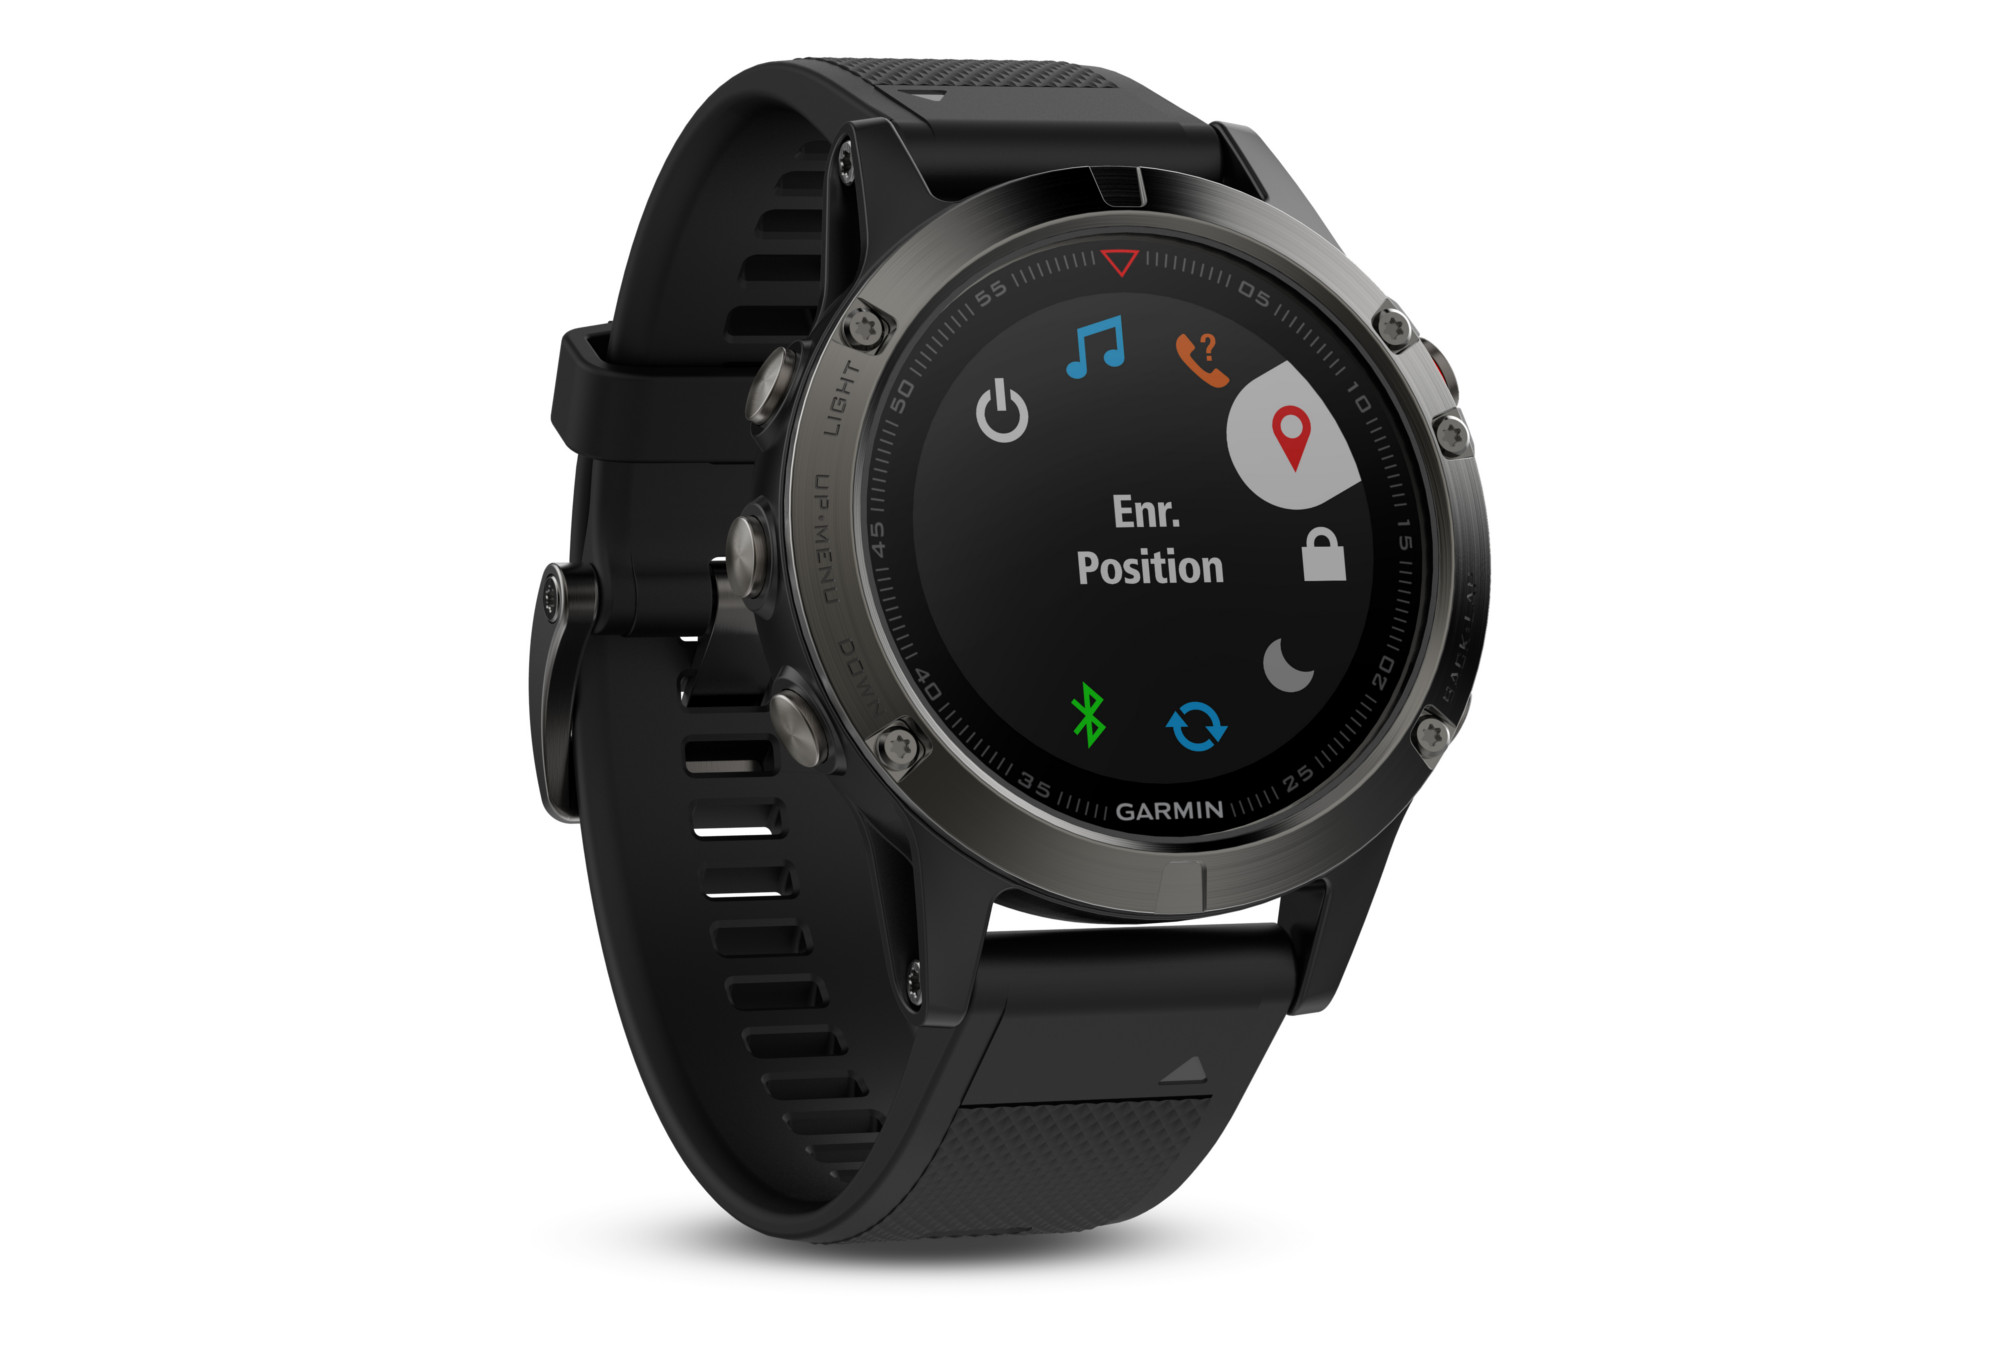 gps uhr garmin fenix 5 hr grau. Black Bedroom Furniture Sets. Home Design Ideas